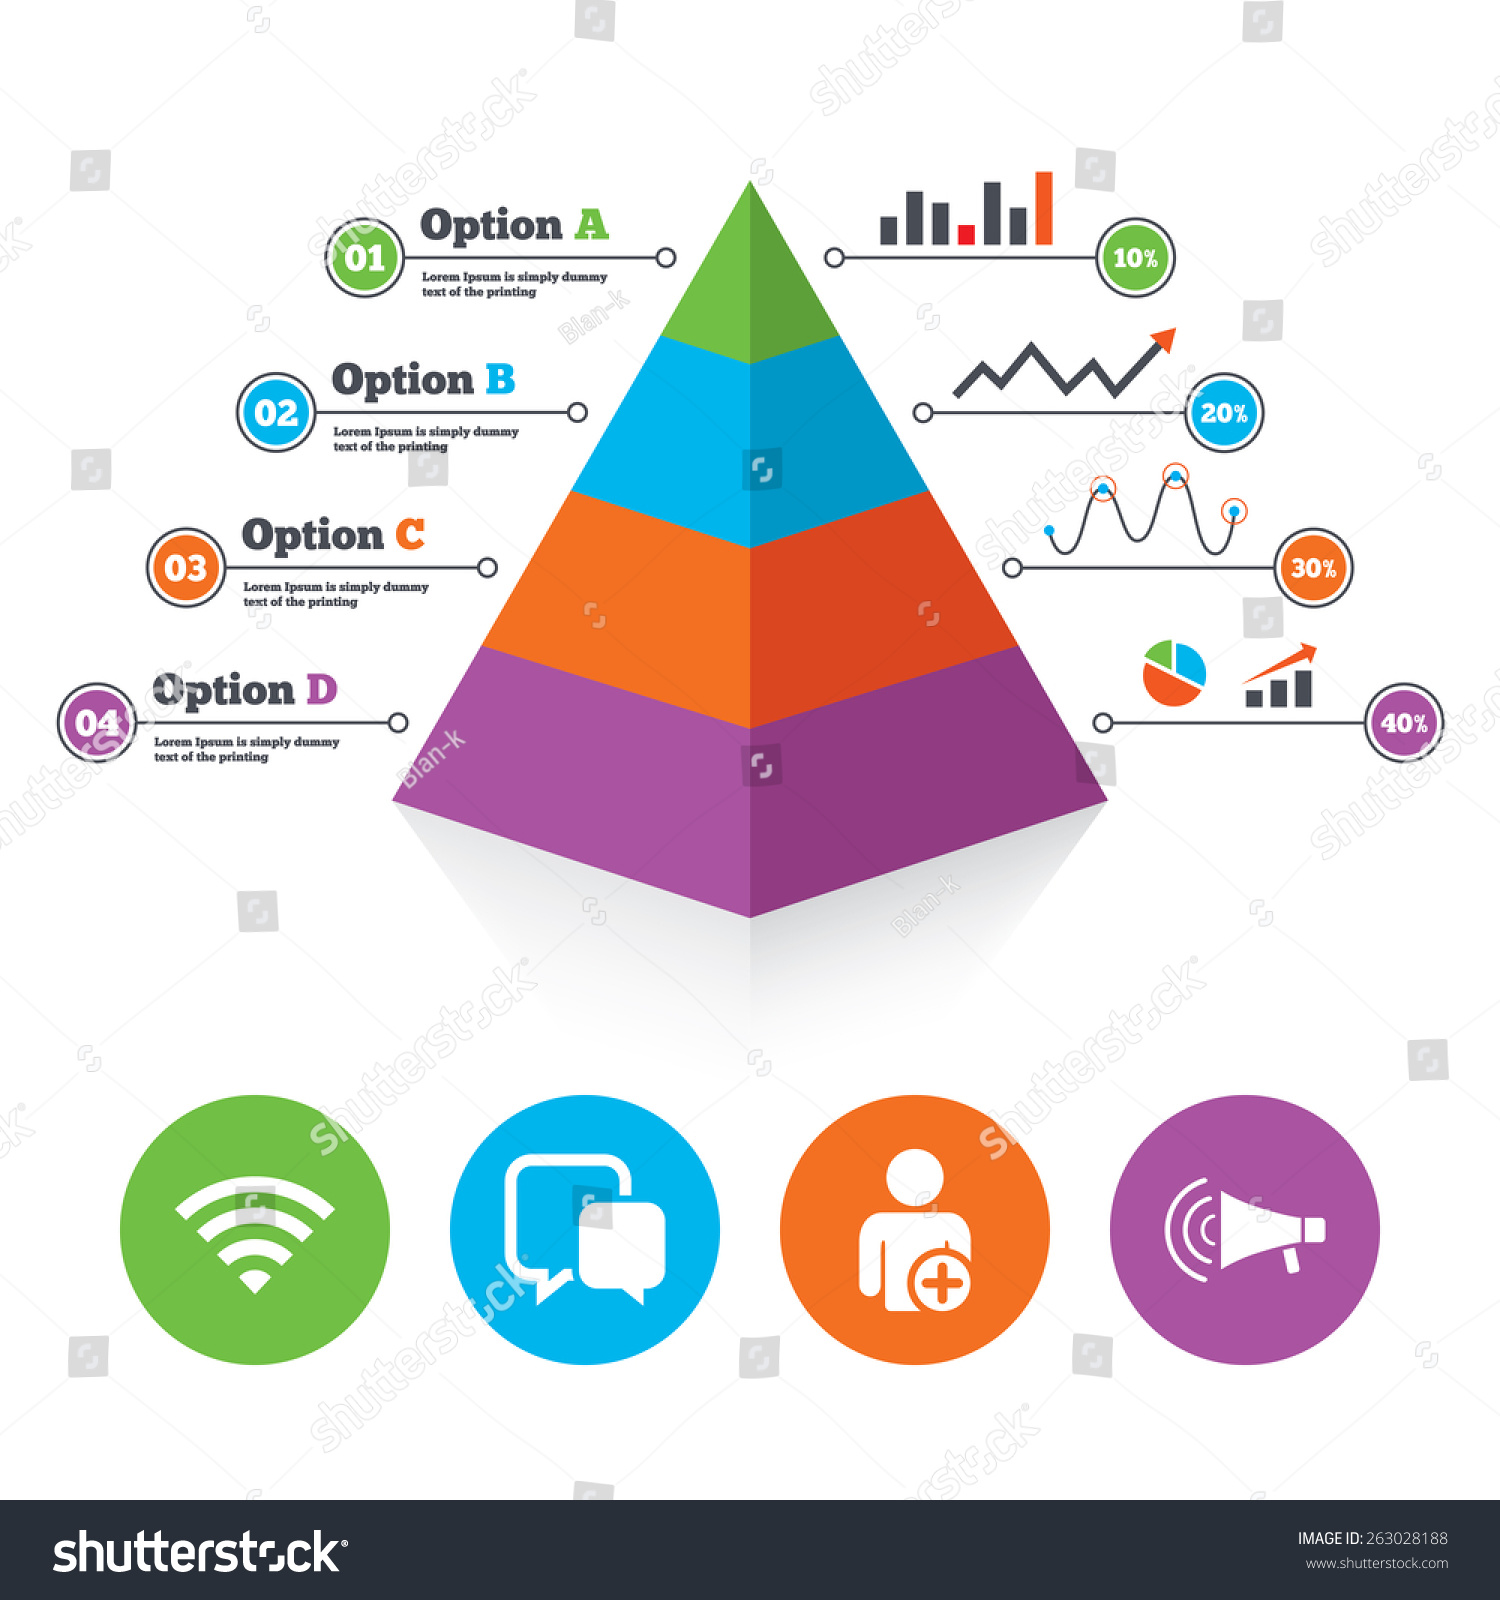 pyramid chart template  wifi and chat bubbles icons  add user and megaphone  loudspeaker symbols